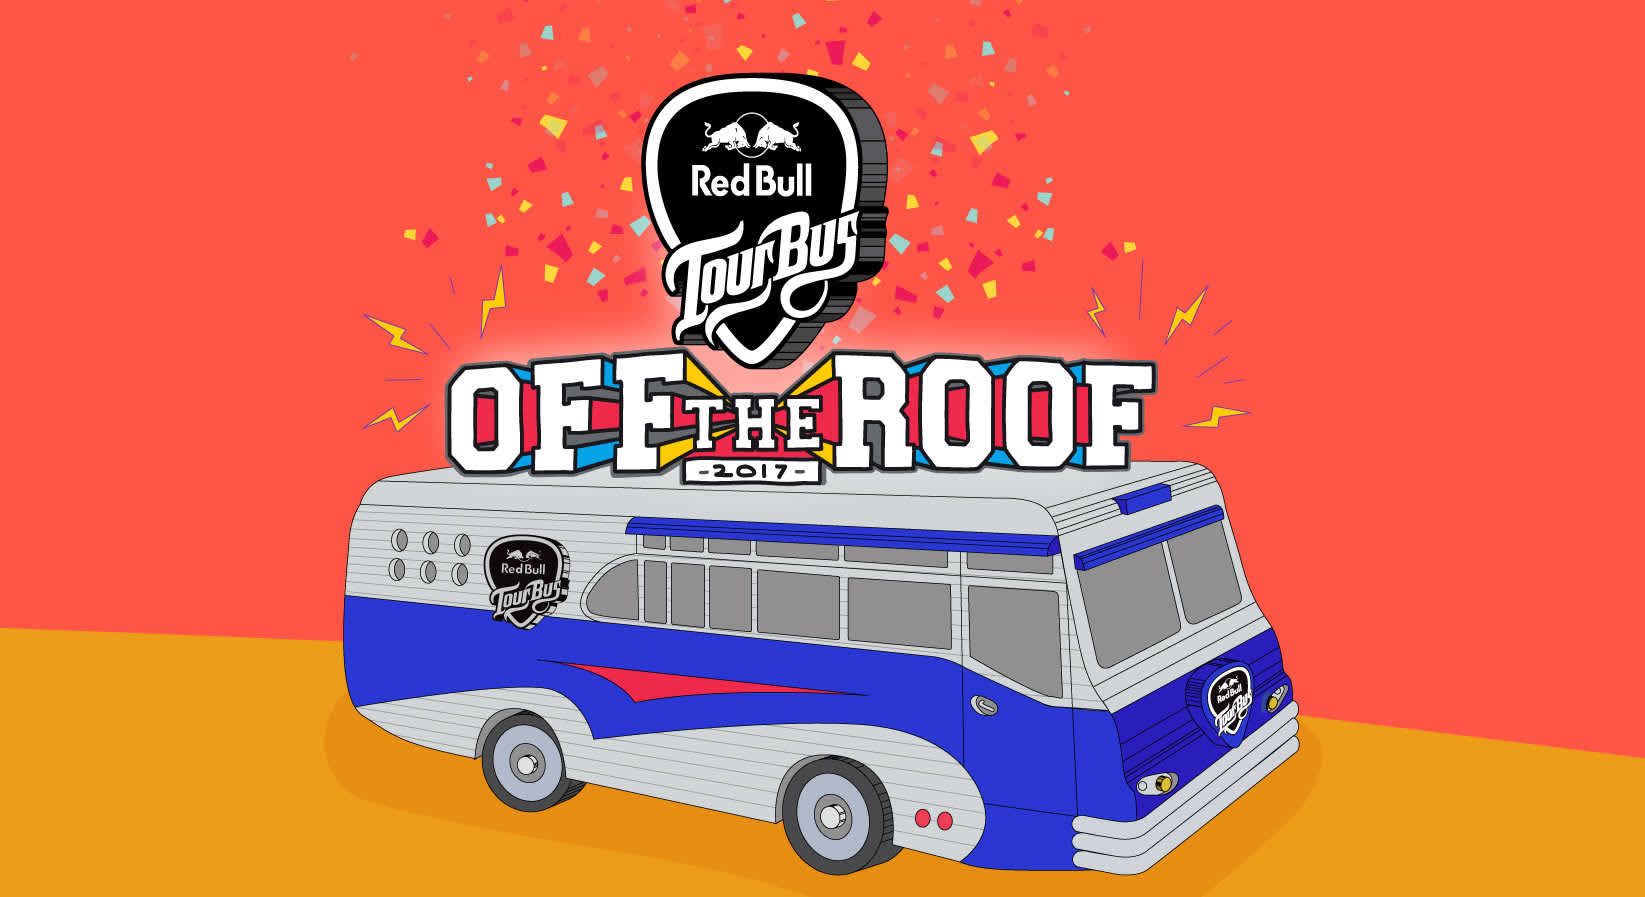 Red Bull Tour Bus #OffTheRoof Is Back!